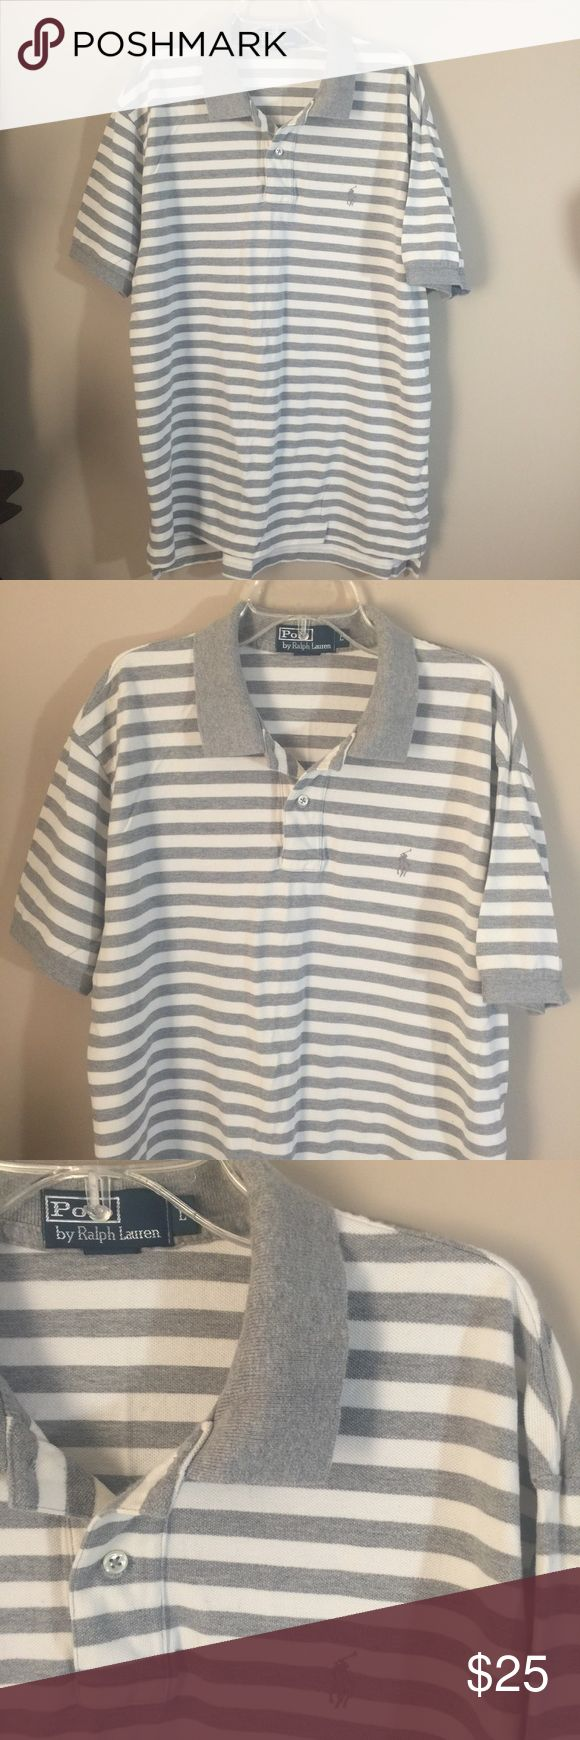 Ralph Lauren Polo collar shirt top shirt sleeve L Polo by Ralph Lauren shirt sleeve collar shirt. Size Large. Good preowned condition. 100% cotton. Check out my others- bundle- and save! Gray and white stripe Polo by Ralph Lauren Shirts Polos